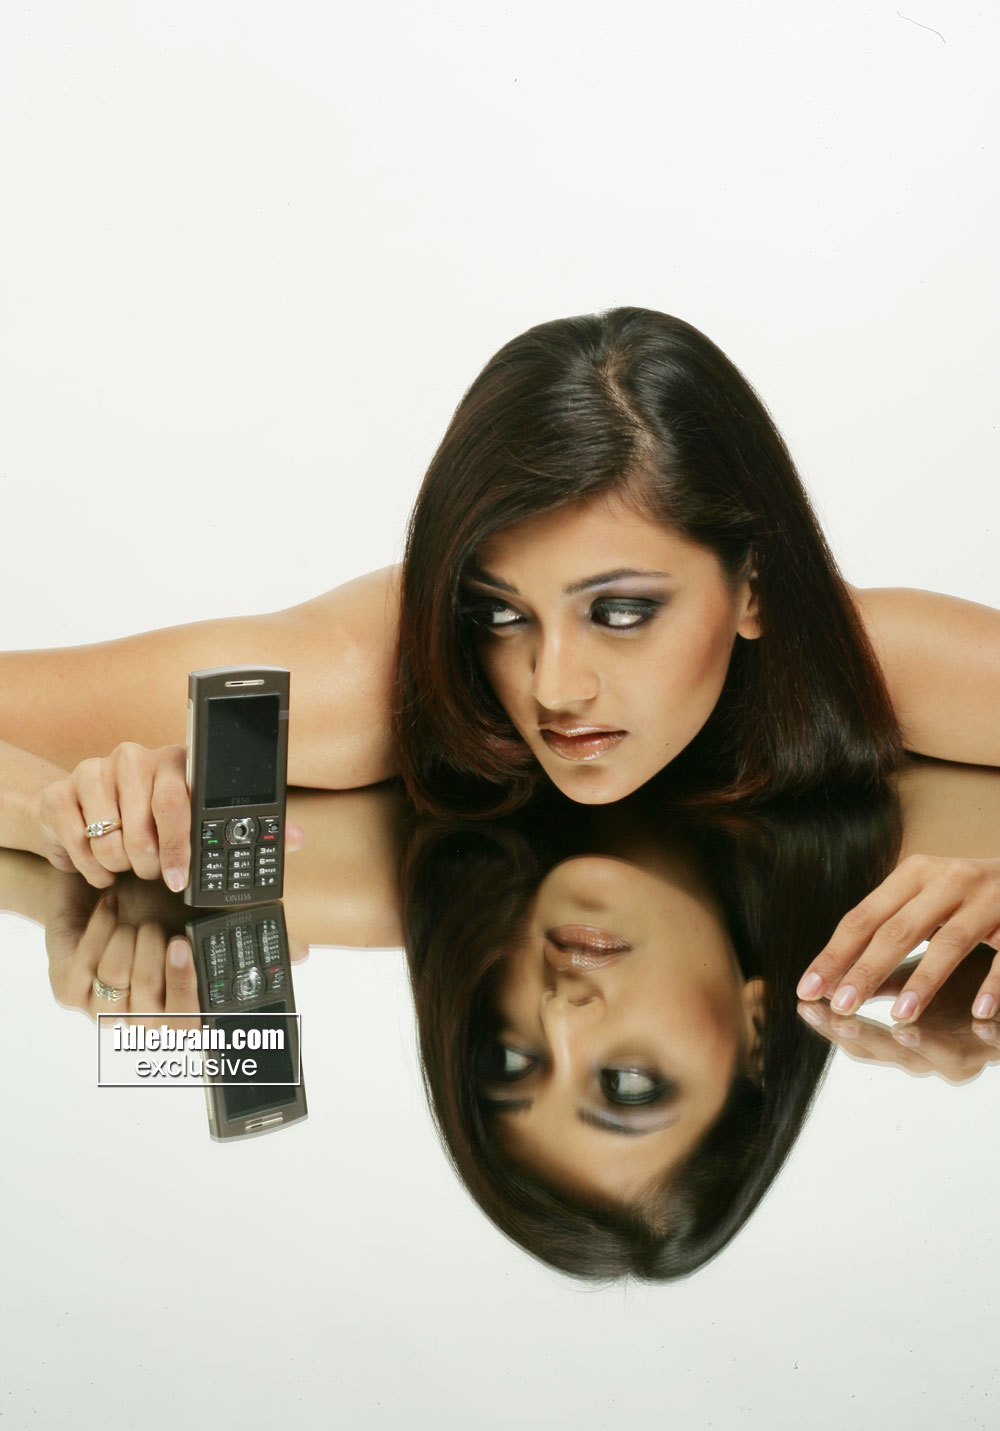 kajal agarwal mobile ad - Mirror Reflection -  kajal agarwal LATEST ad pic - May 2012